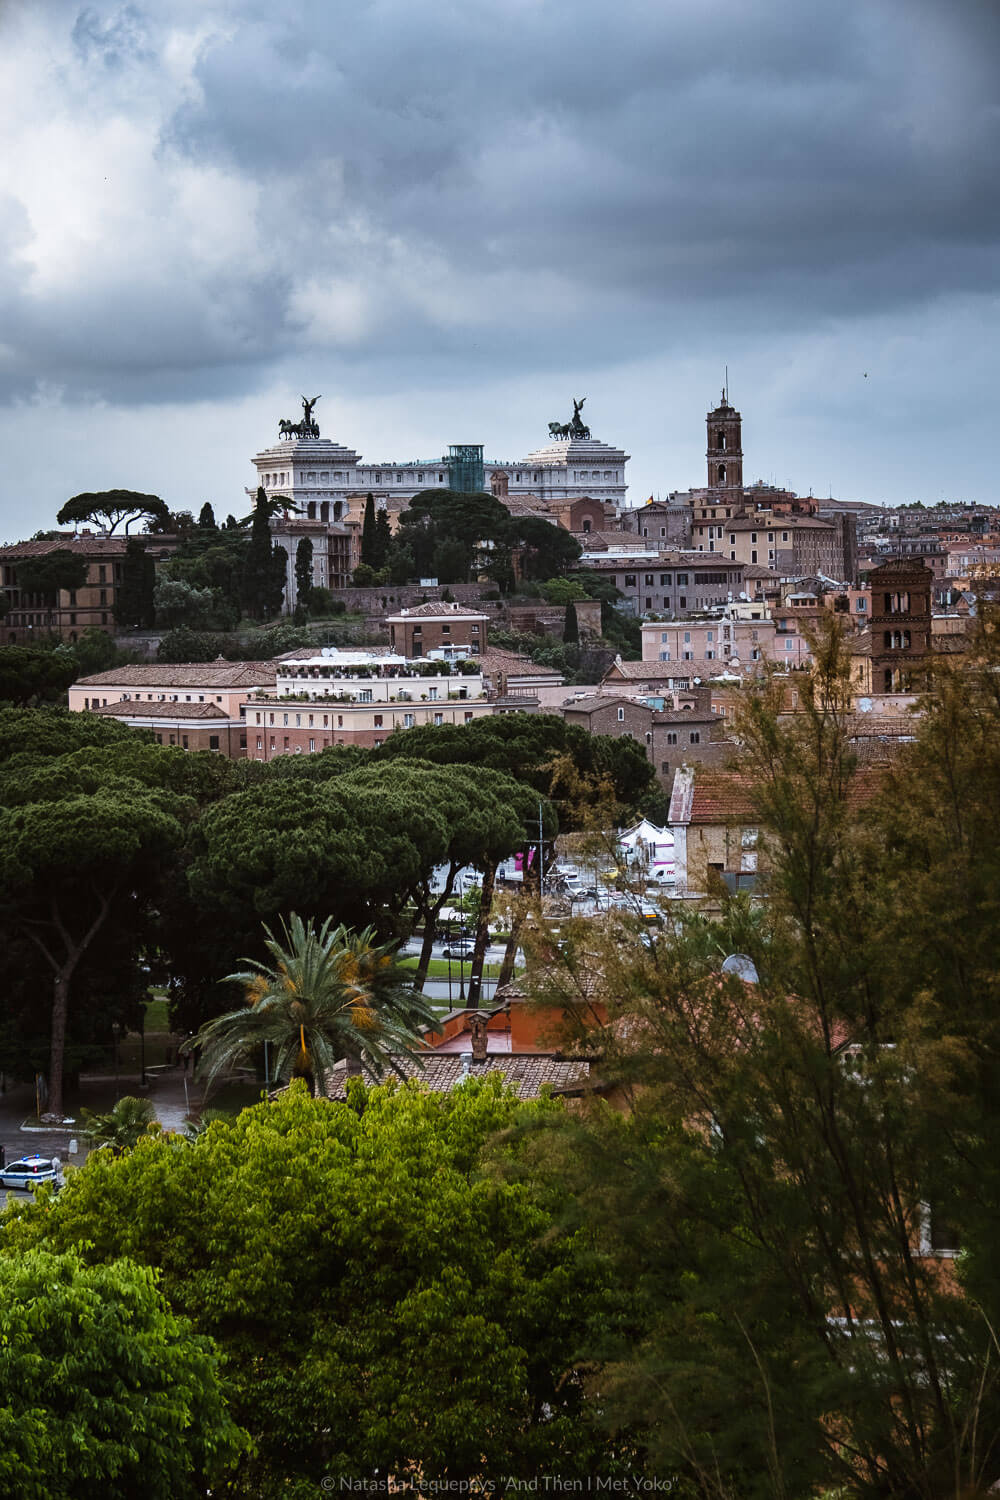 """Views from the Orange Garden in Rome, Italy. Travel photography and guide by © Natasha Lequepeys for """"And Then I Met Yoko"""". #rome #italy #travelblog #travelphotography"""